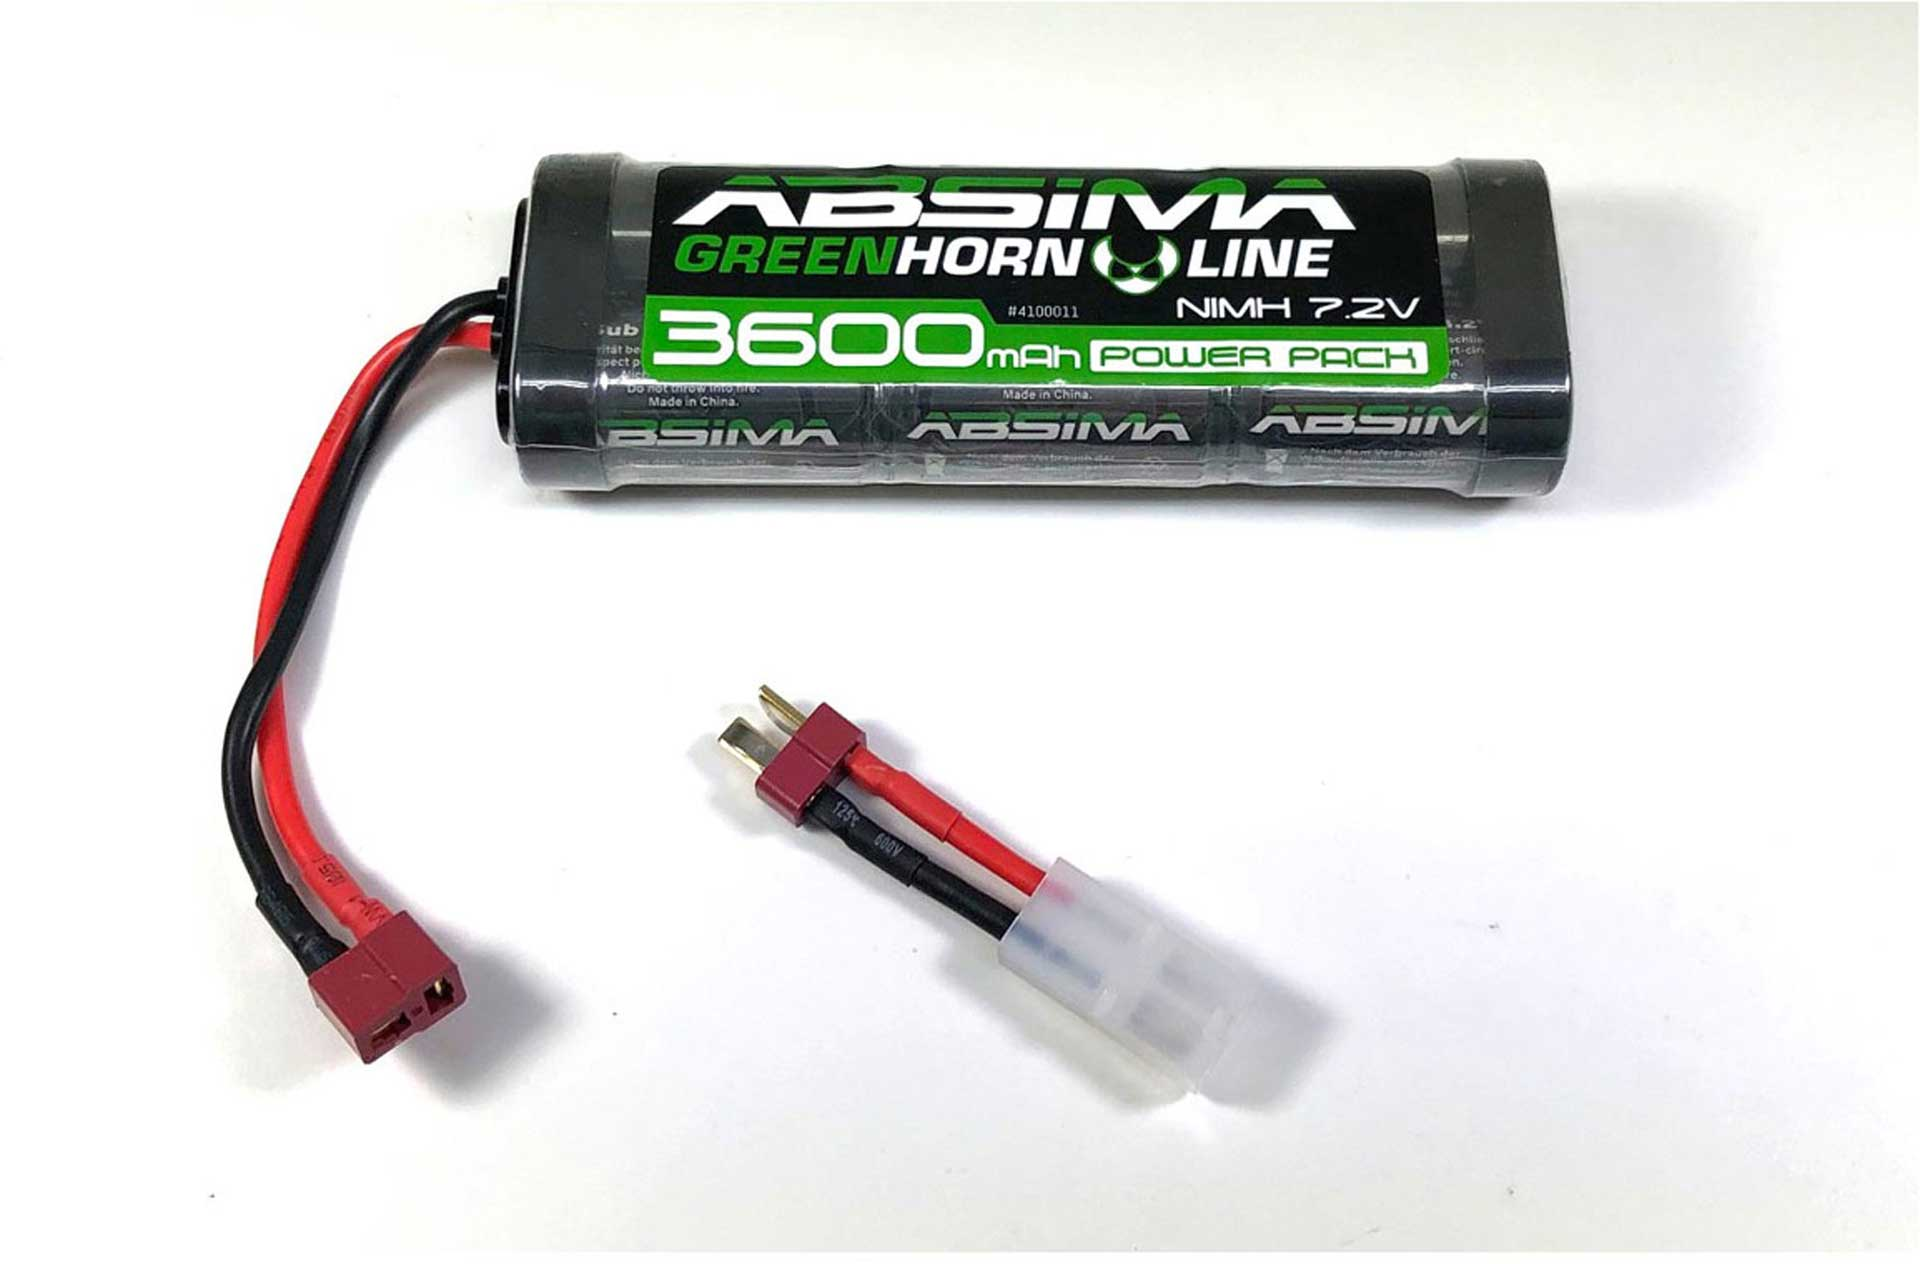 ABSIMA GREENHORN NIMH STICK PACK 7.2V 3600MAH BATTERY WITH T-PLUG CONNECTOR + TAMIYA ADAPTER